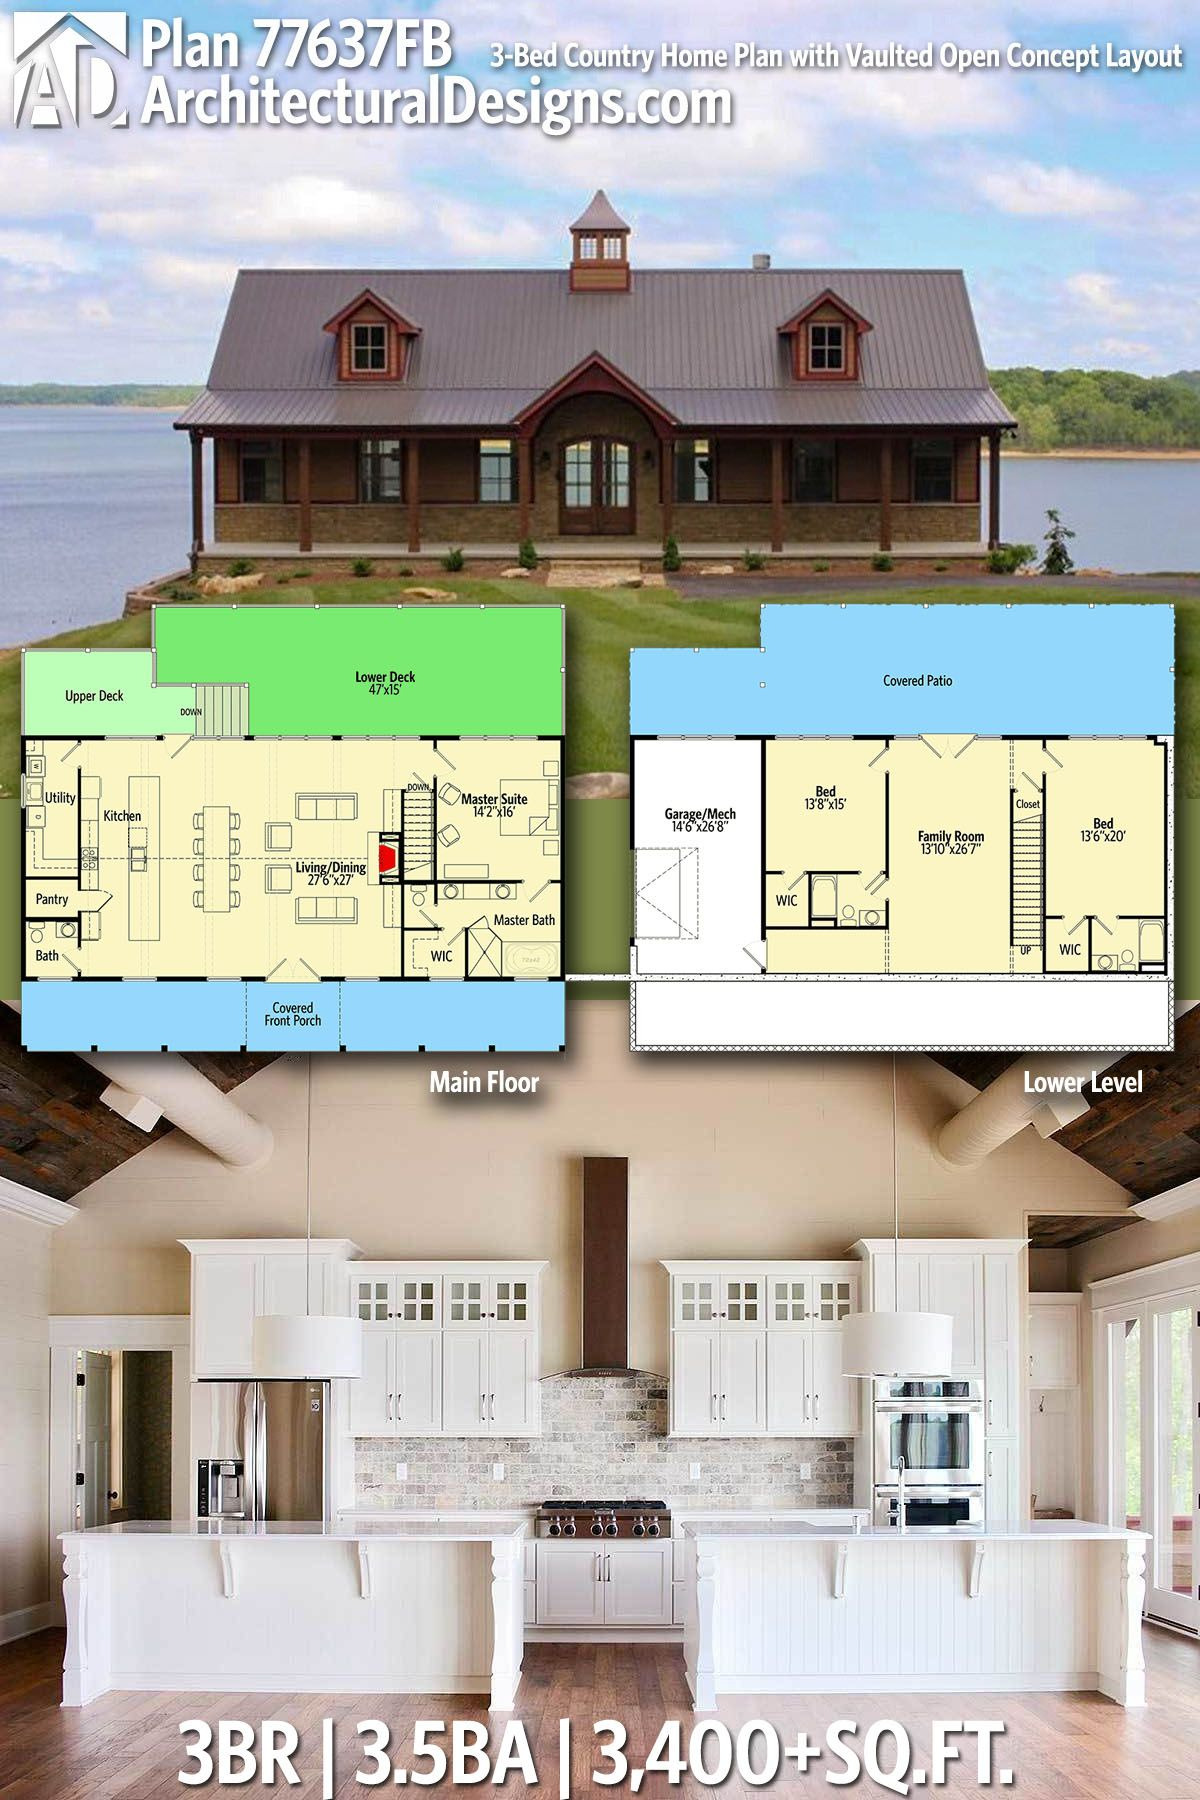 Country Homes House Plans Lovely Plan Fb 3 Bed Country Home Plan with Vaulted Open